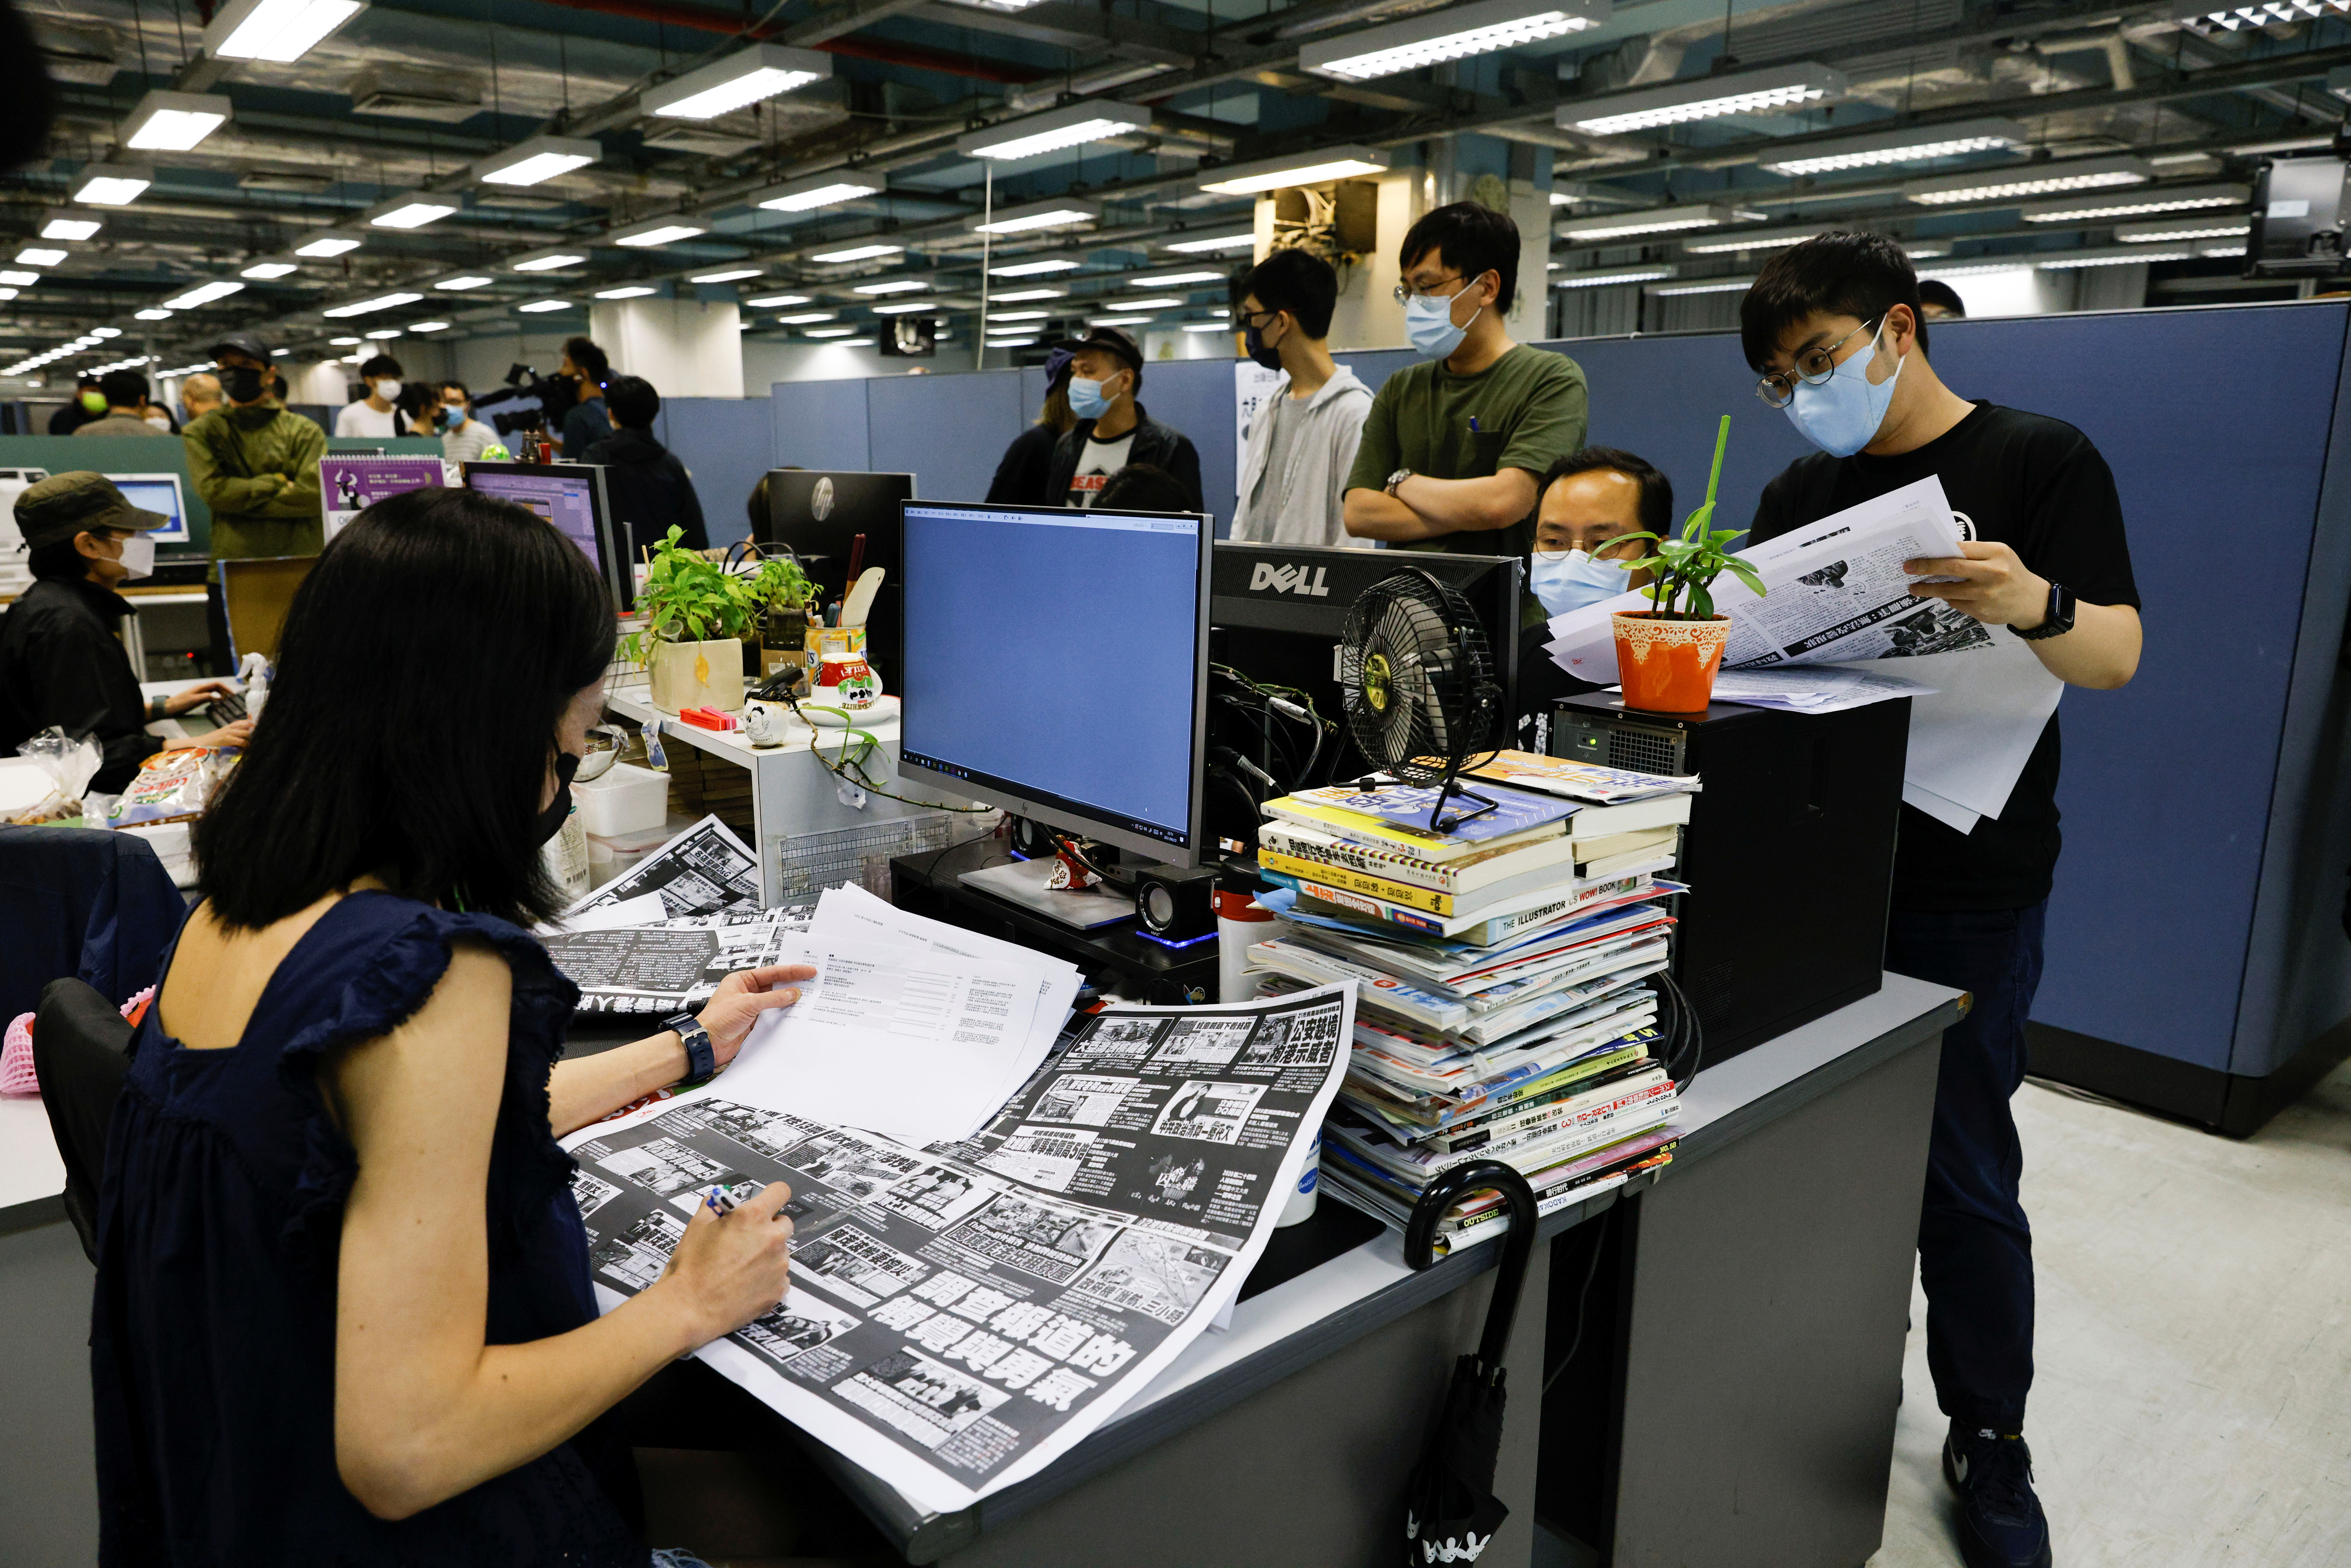 Staff members of Apple Daily and its publisher Next Digital work on the final edition of their newspaper in Hong Kong, China June 23, 2021. REUTERS/Lam Yik